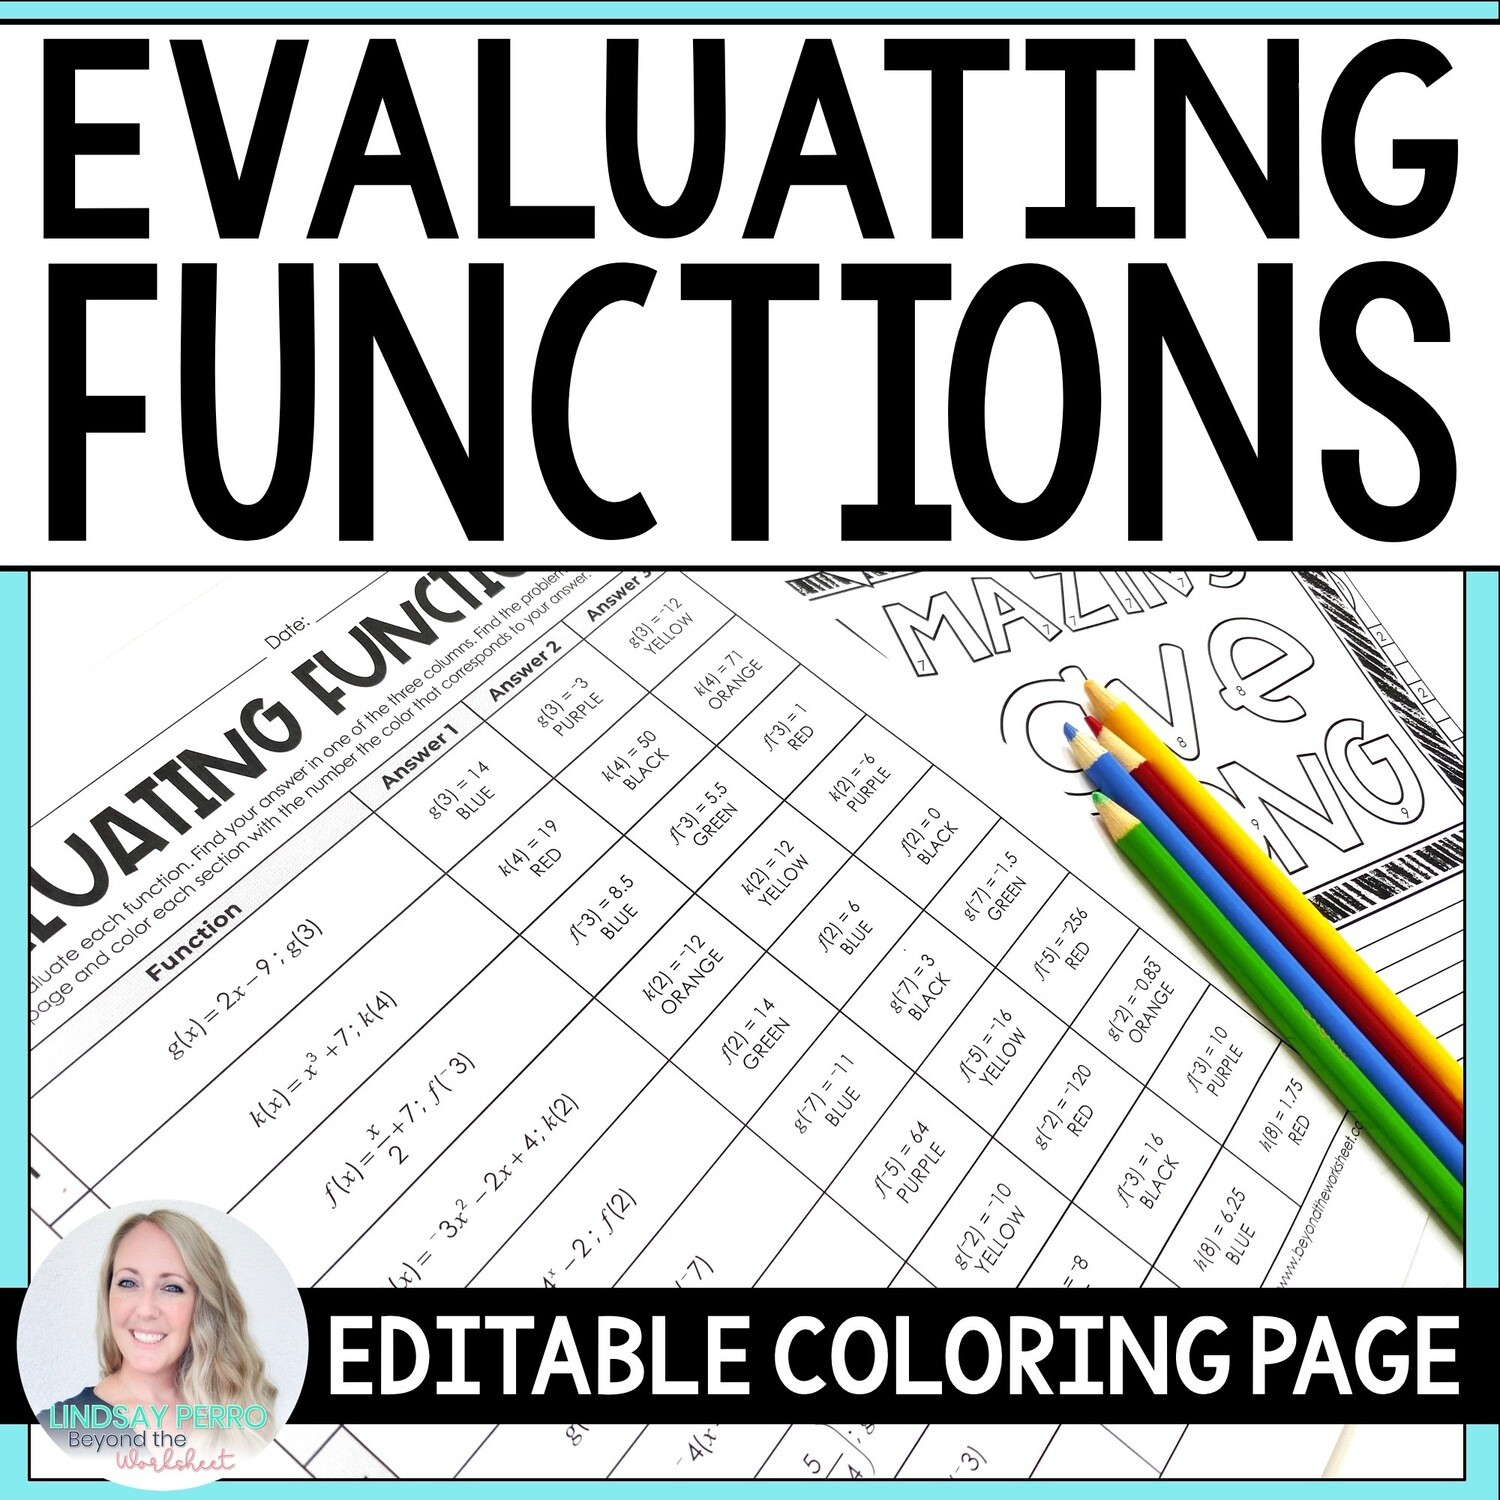 Evaluating Functions Editable Coloring Page